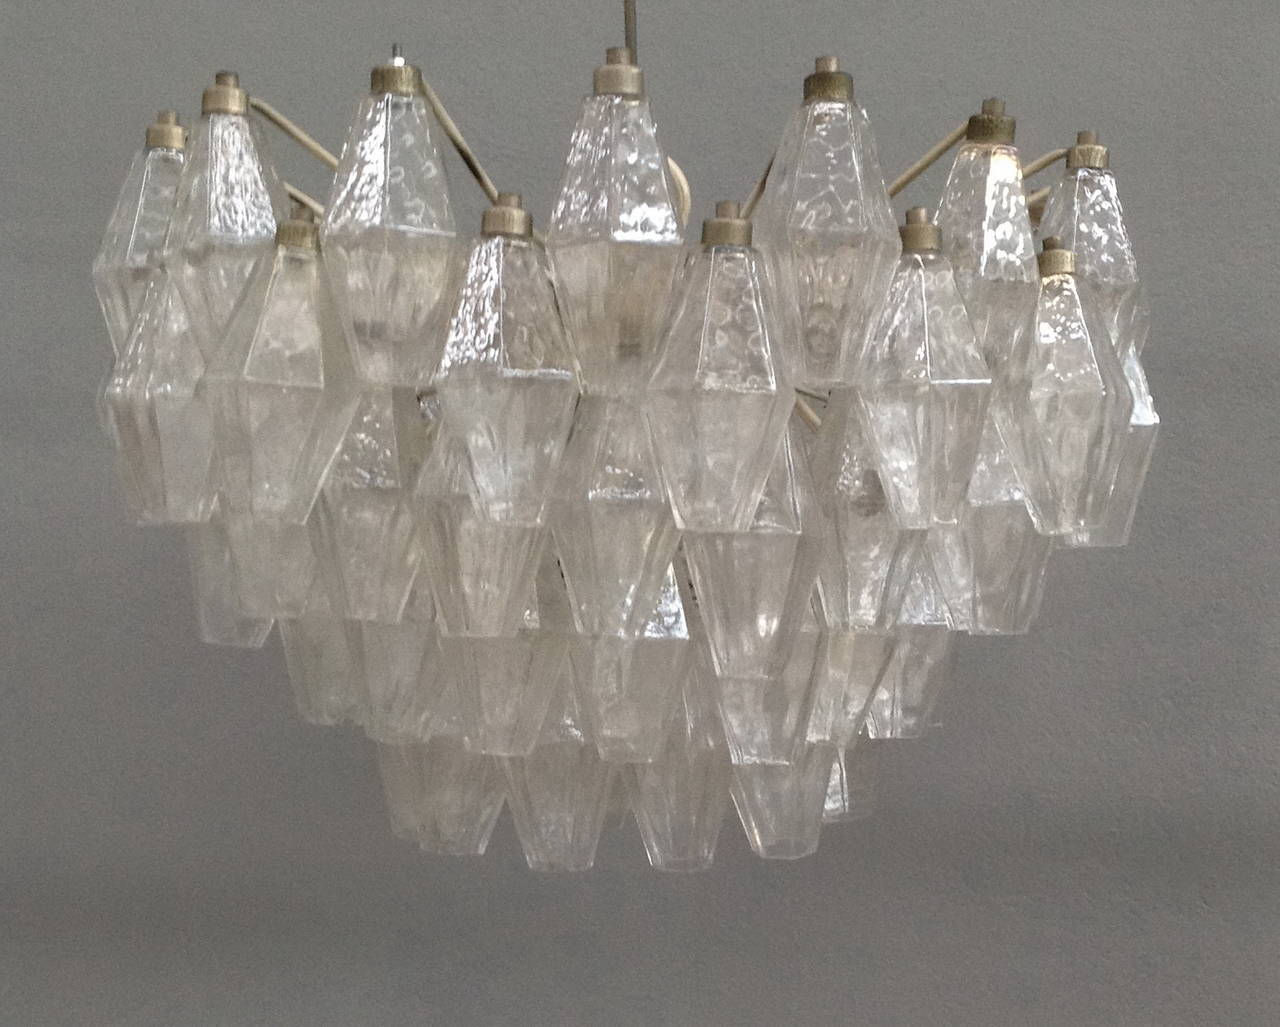 Murano polyhedral glasses chandelier attributed to carlo scarpa for murano glass chandelier with eight lights five tiers glasses are all clear aloadofball Choice Image